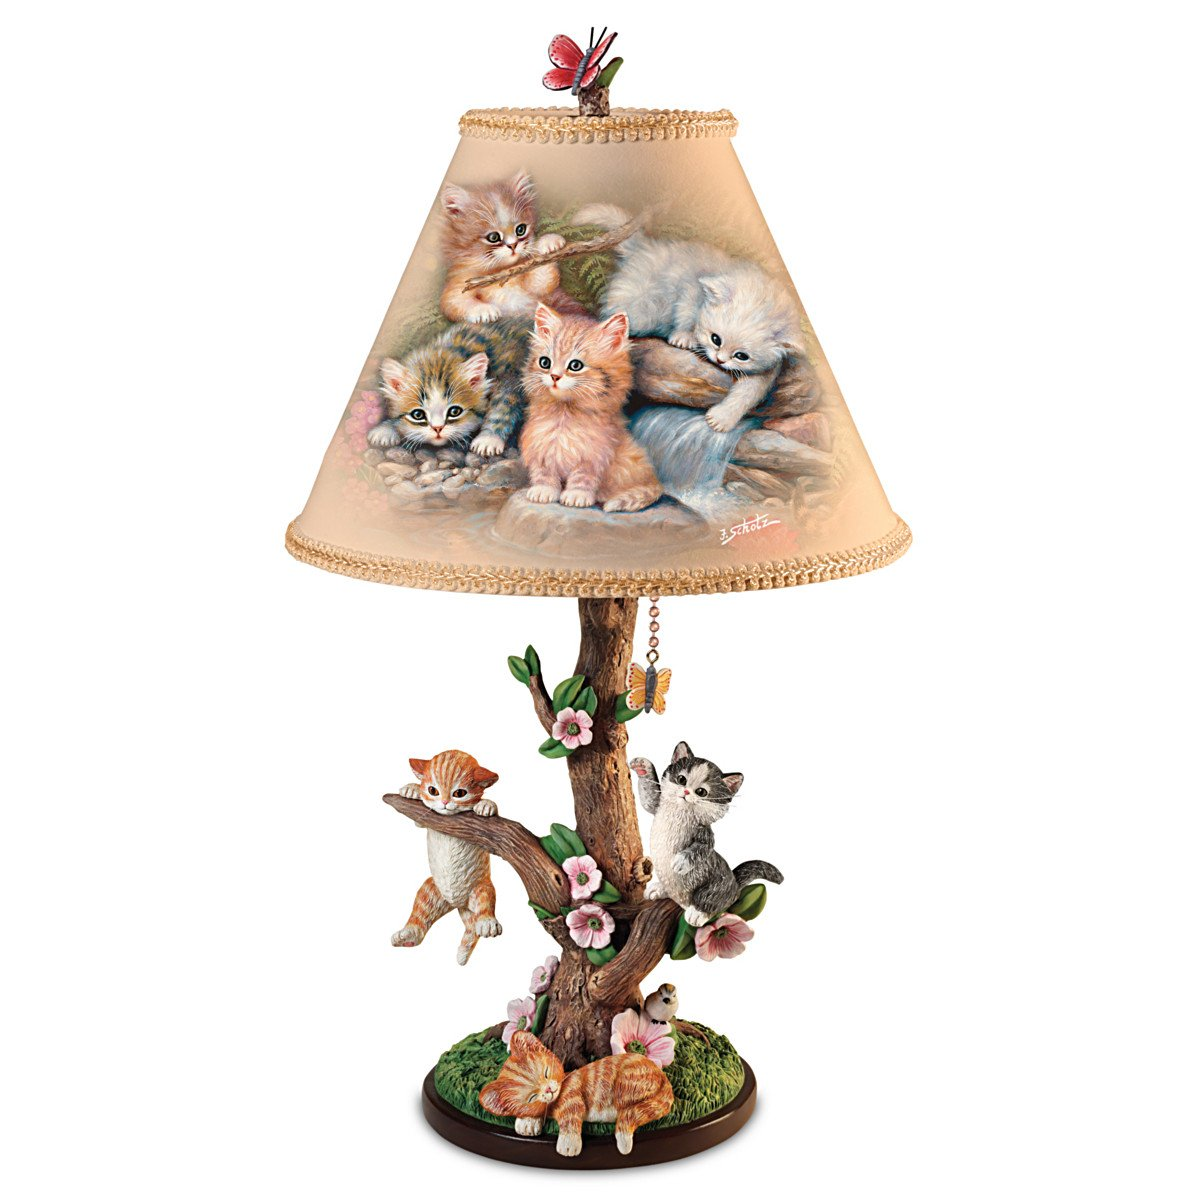 Country Kitties Lamp with Art by Jurgen Scholz! Sculpted Kitties Exploring the Outdoors with Butterfly Finial for Tabletop Lamp - By The Bradford Exchange